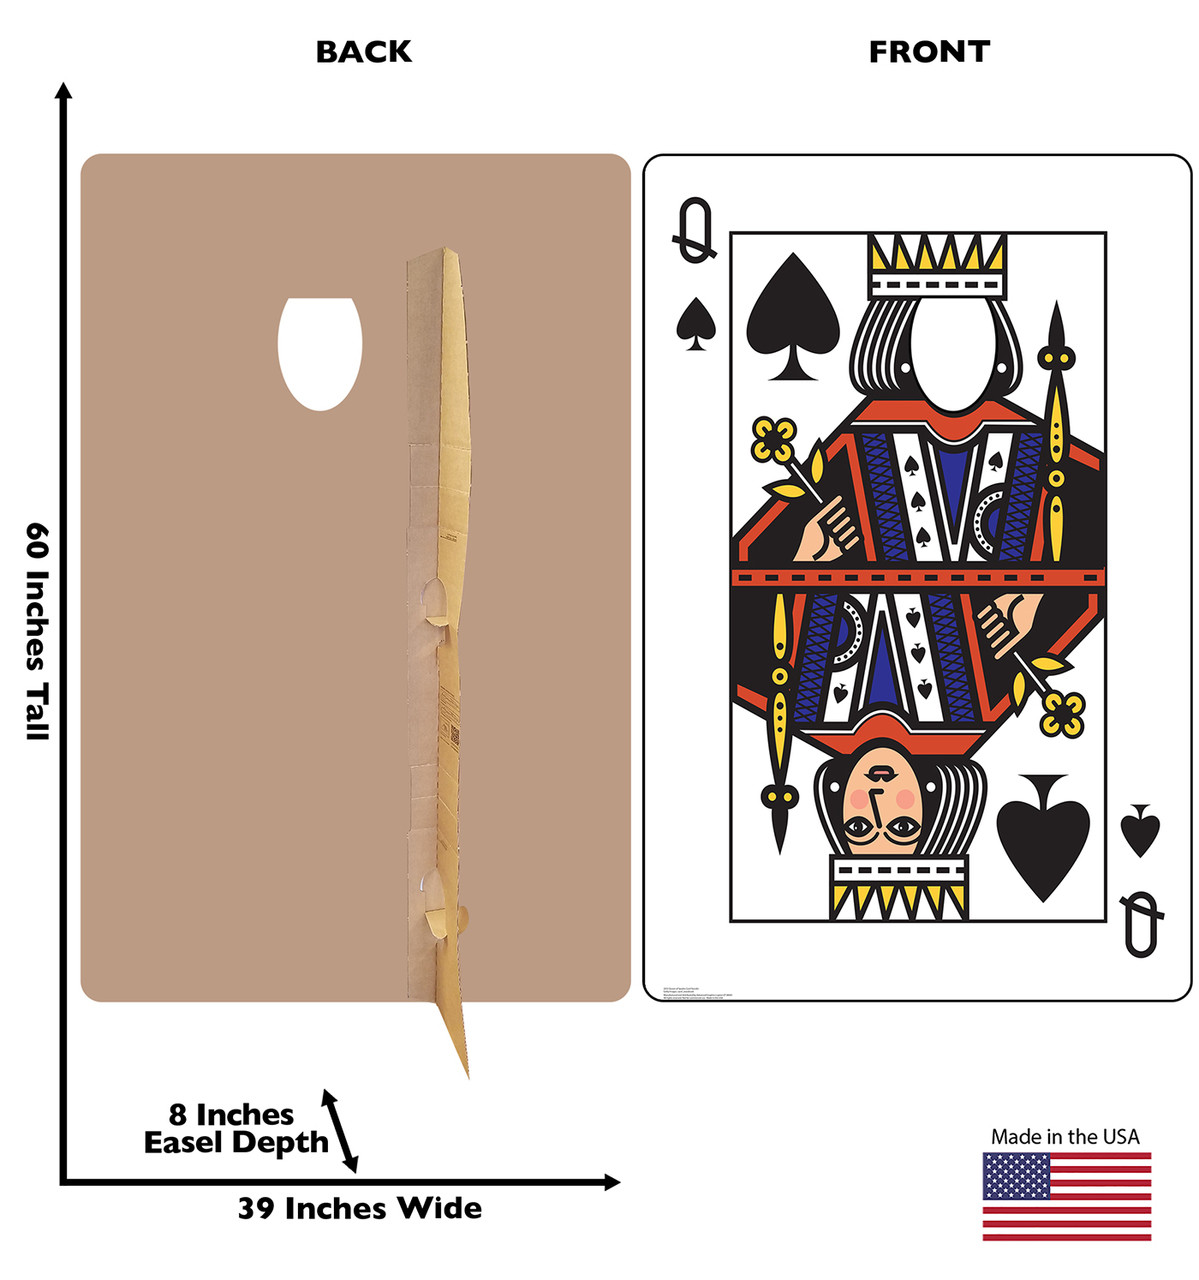 Life-size cardboard standee of the Queen of Spades Card standin with back and front dimensions.